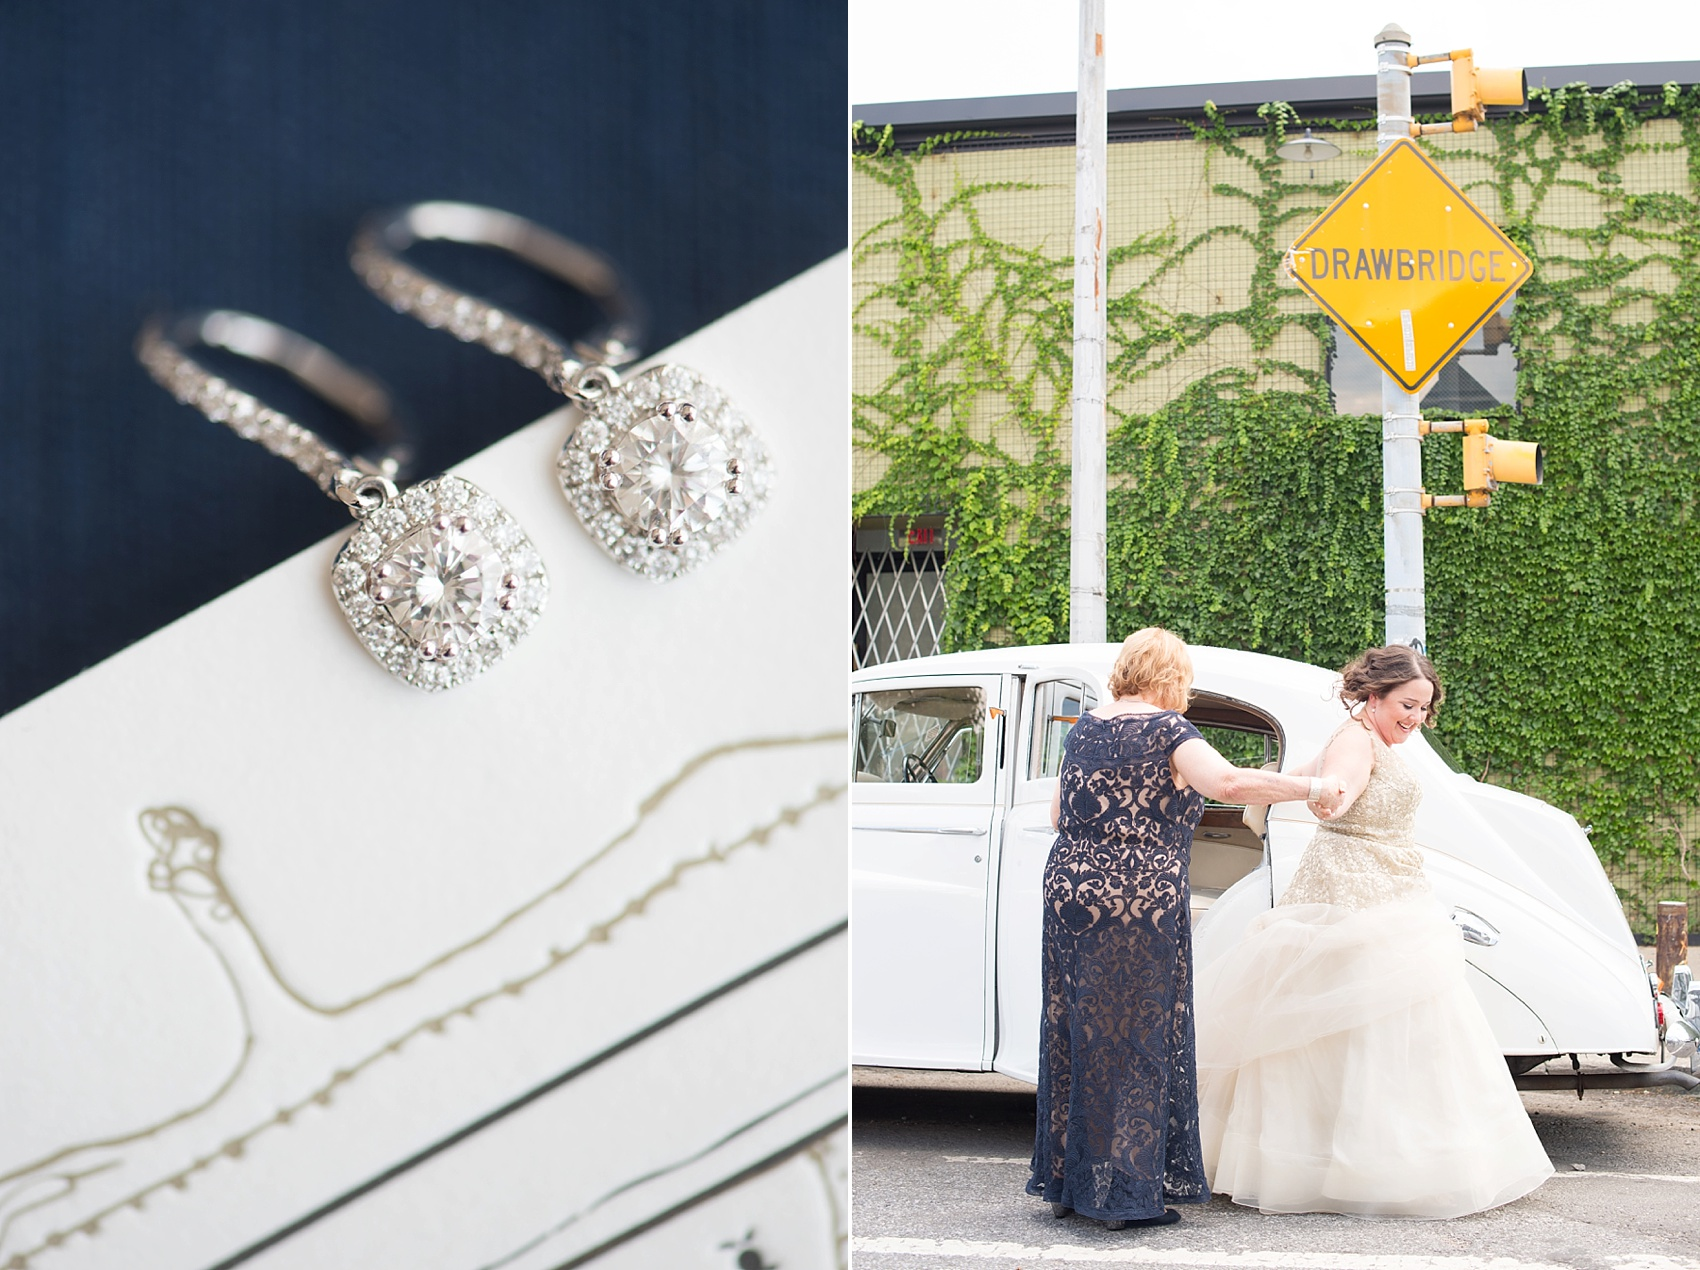 501 Union lesbian wedding - vintage Rolls Royce and earrings. Photos by Mikkel Paige Photography, in Brooklyn, NYC.